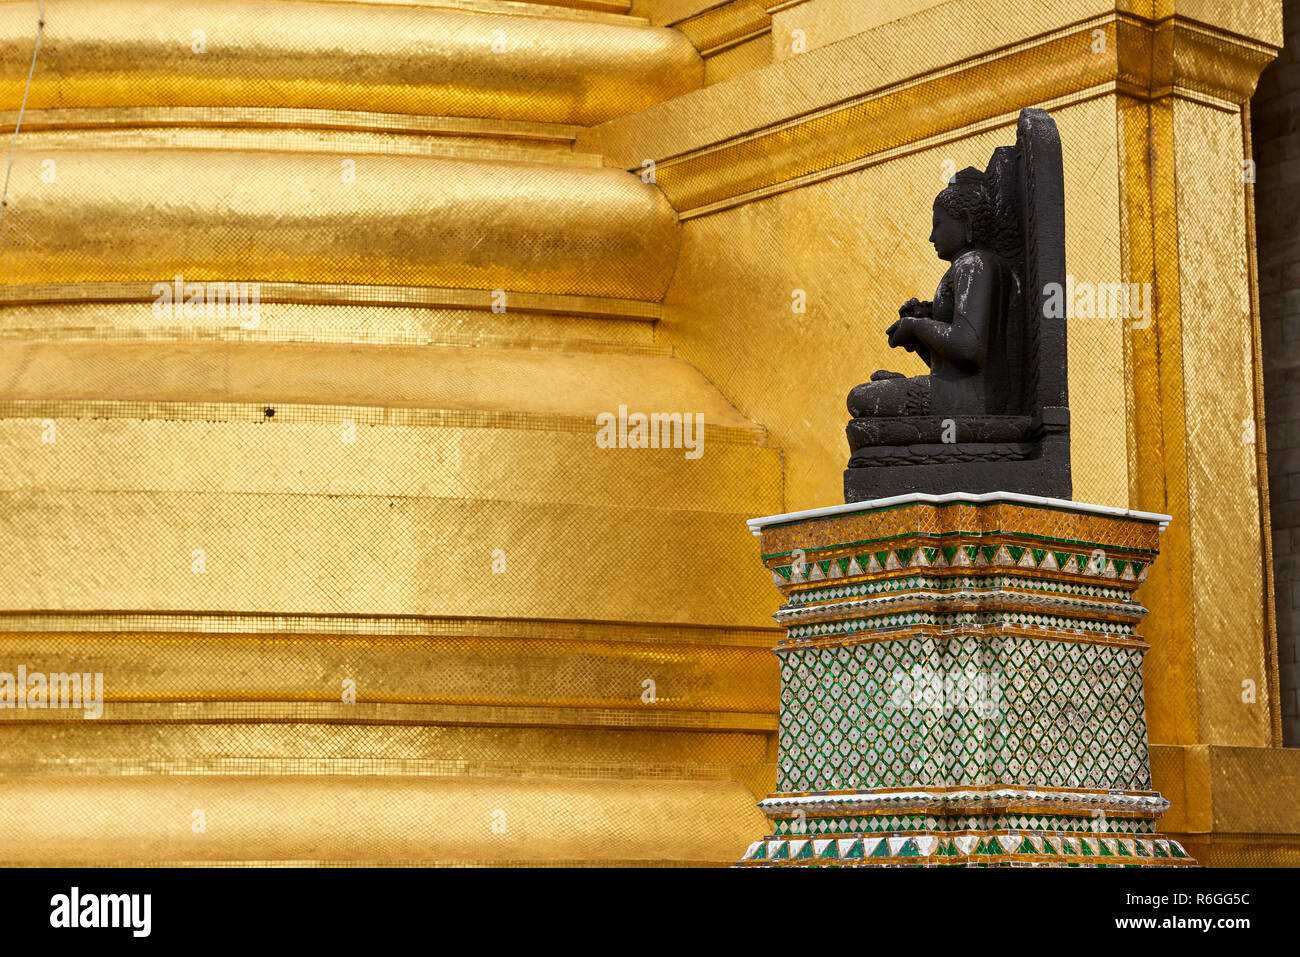 A small Buddha statue against a gilt column inside the Grand Palace in Bangkok, Thailand. Stock Photo